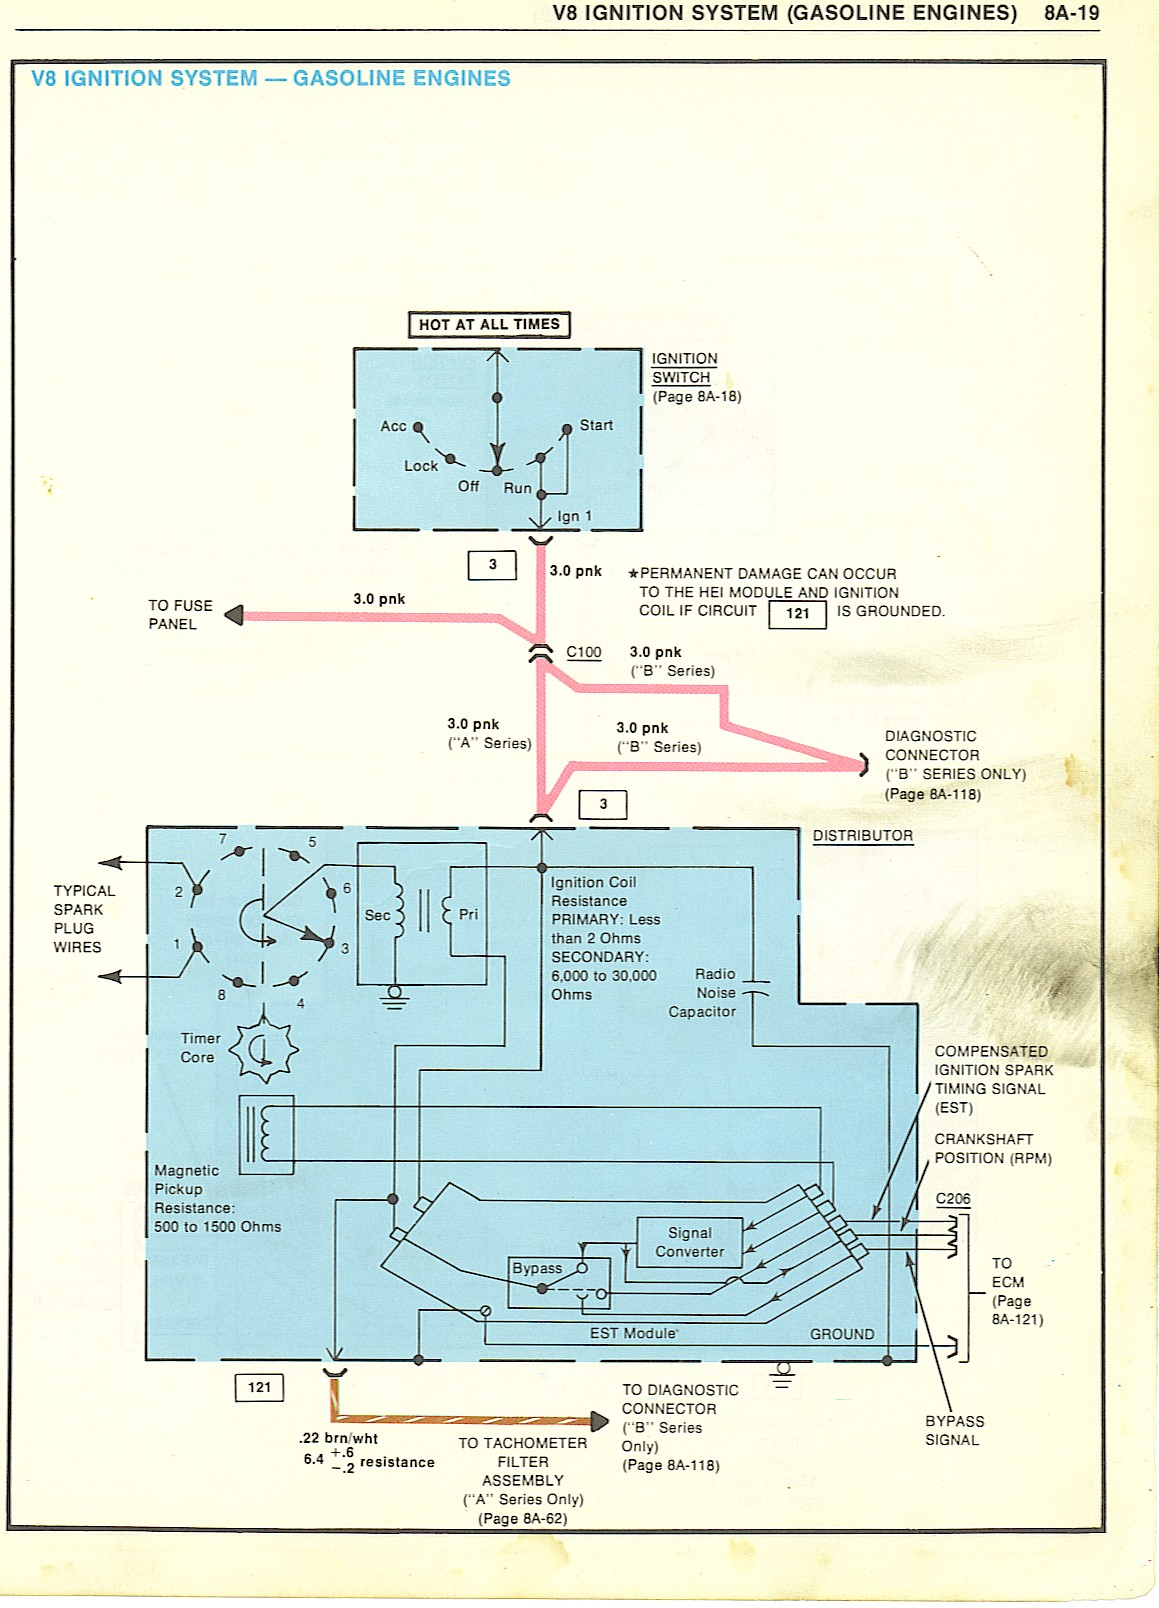 hight resolution of v8 ignition system wiring diagrams v8 ignition system 1972 el camino wiring diagram hei